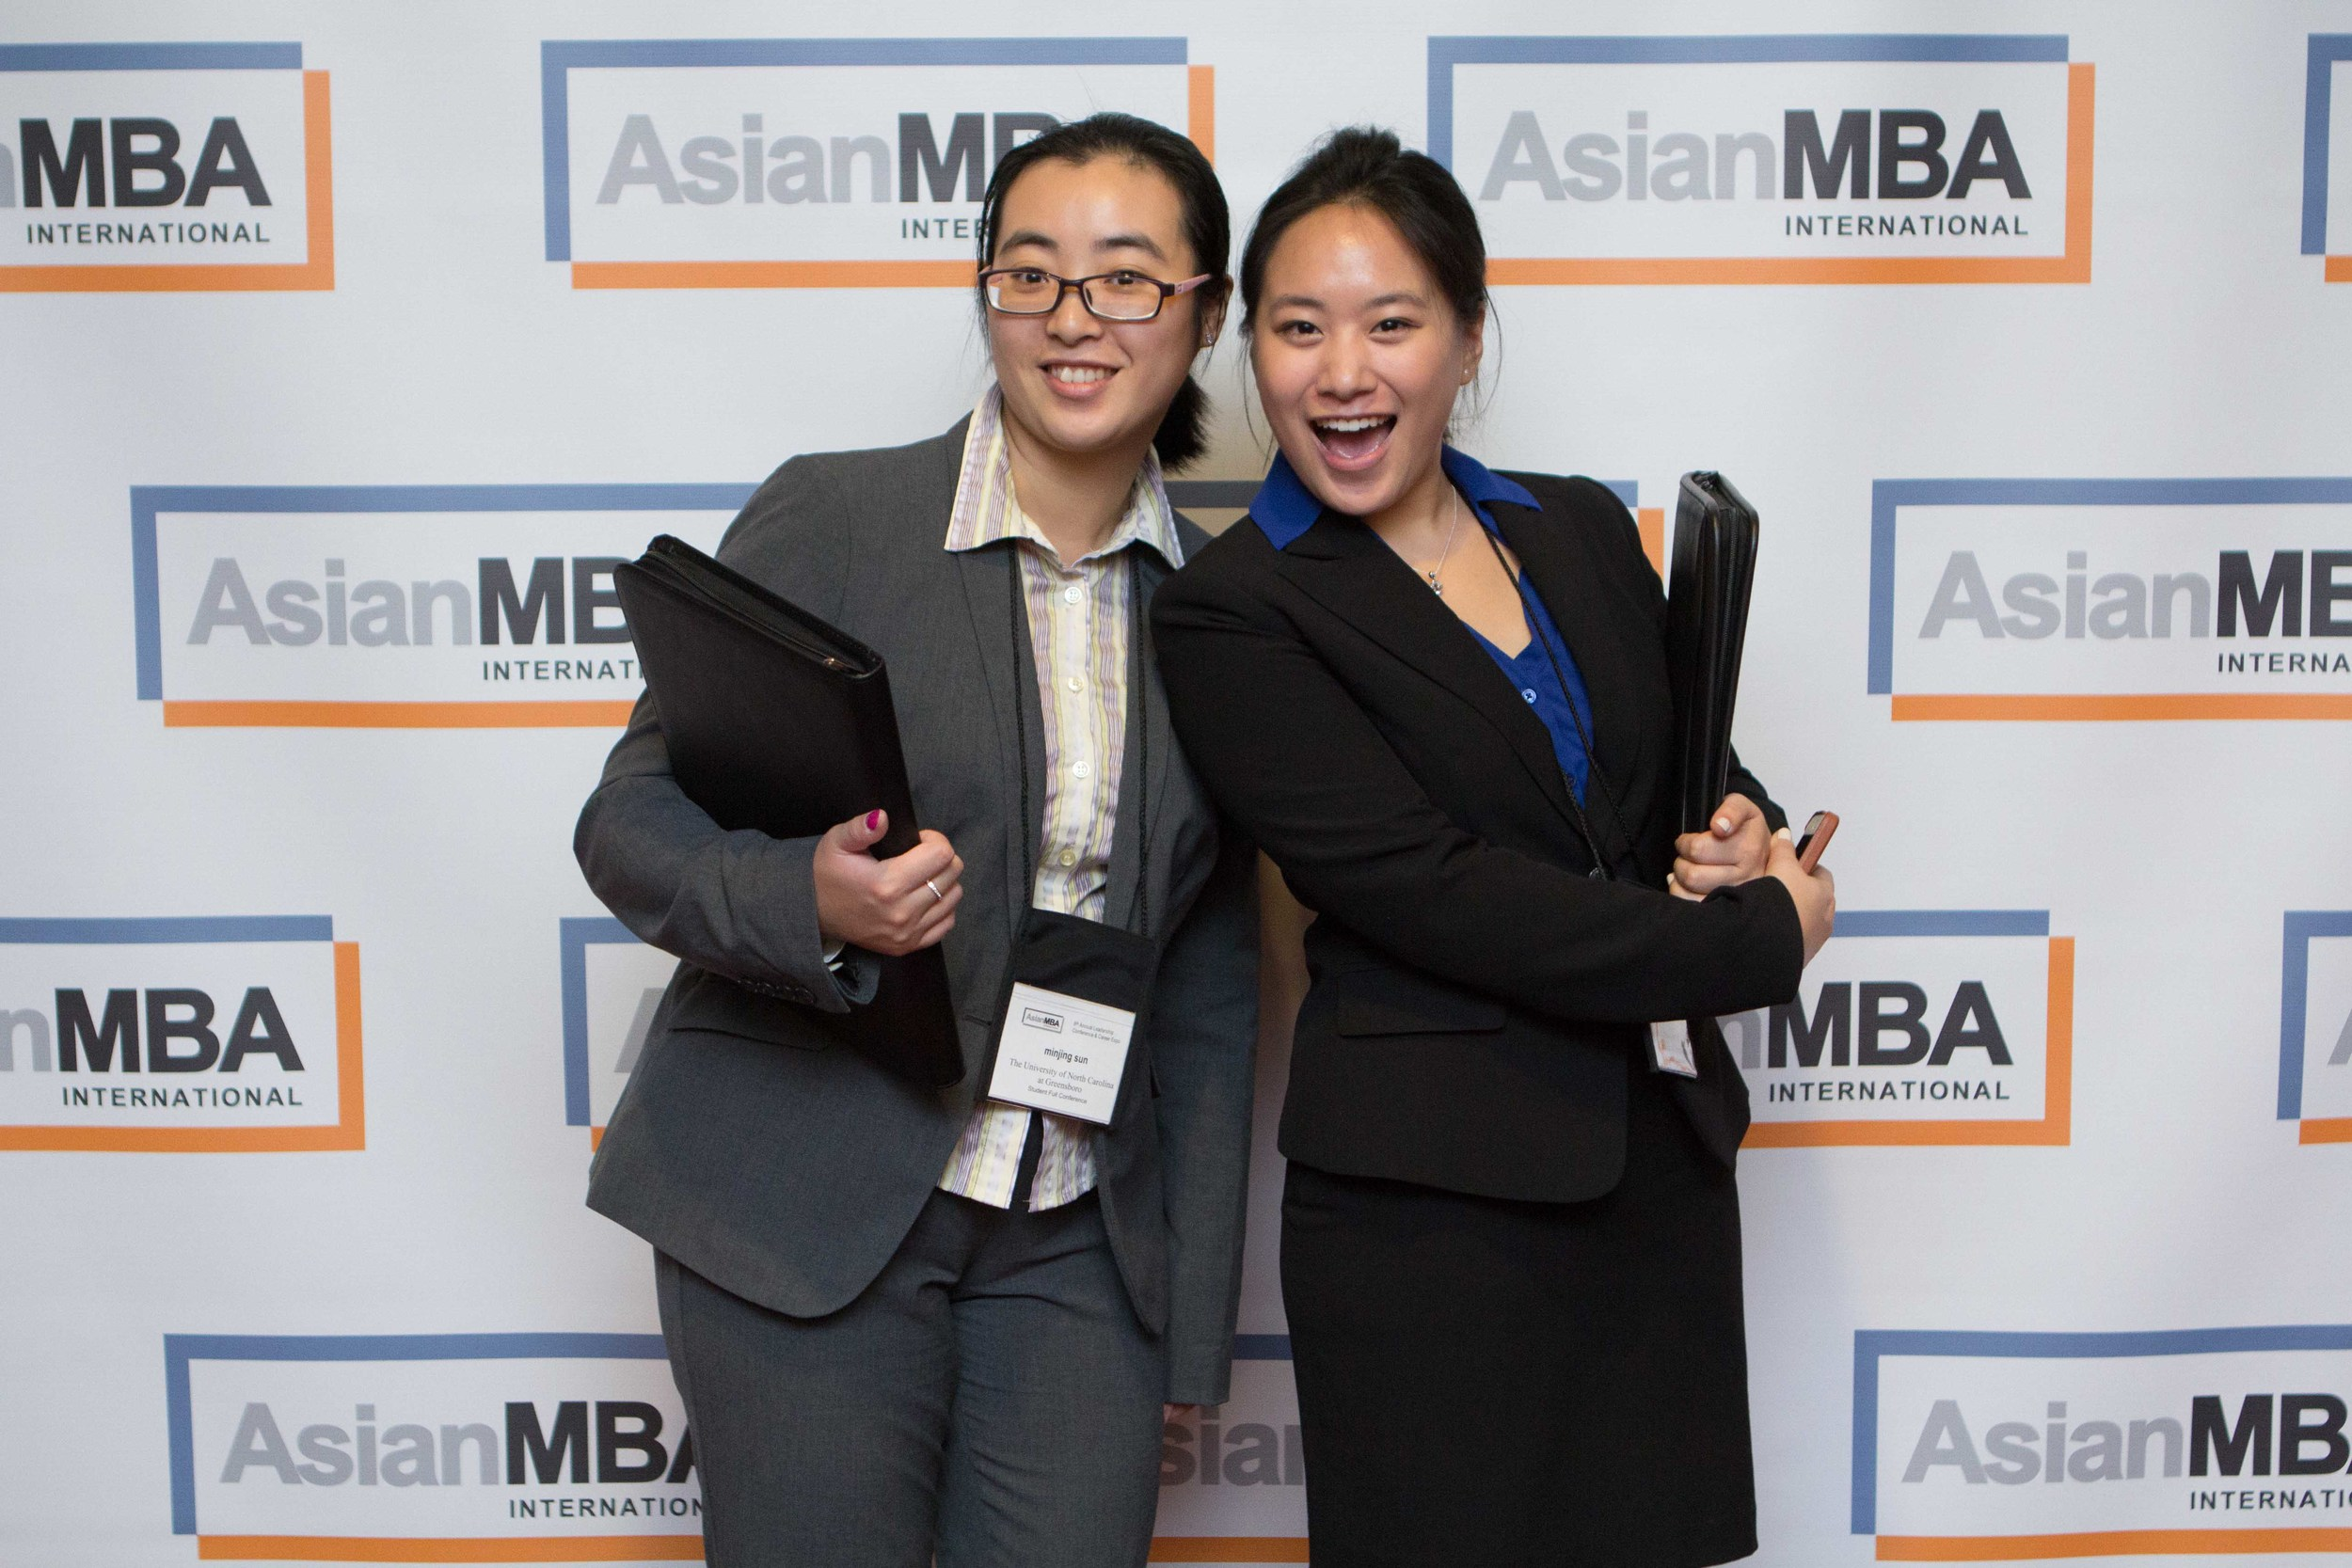 asianmba_webhighlights-19.jpg